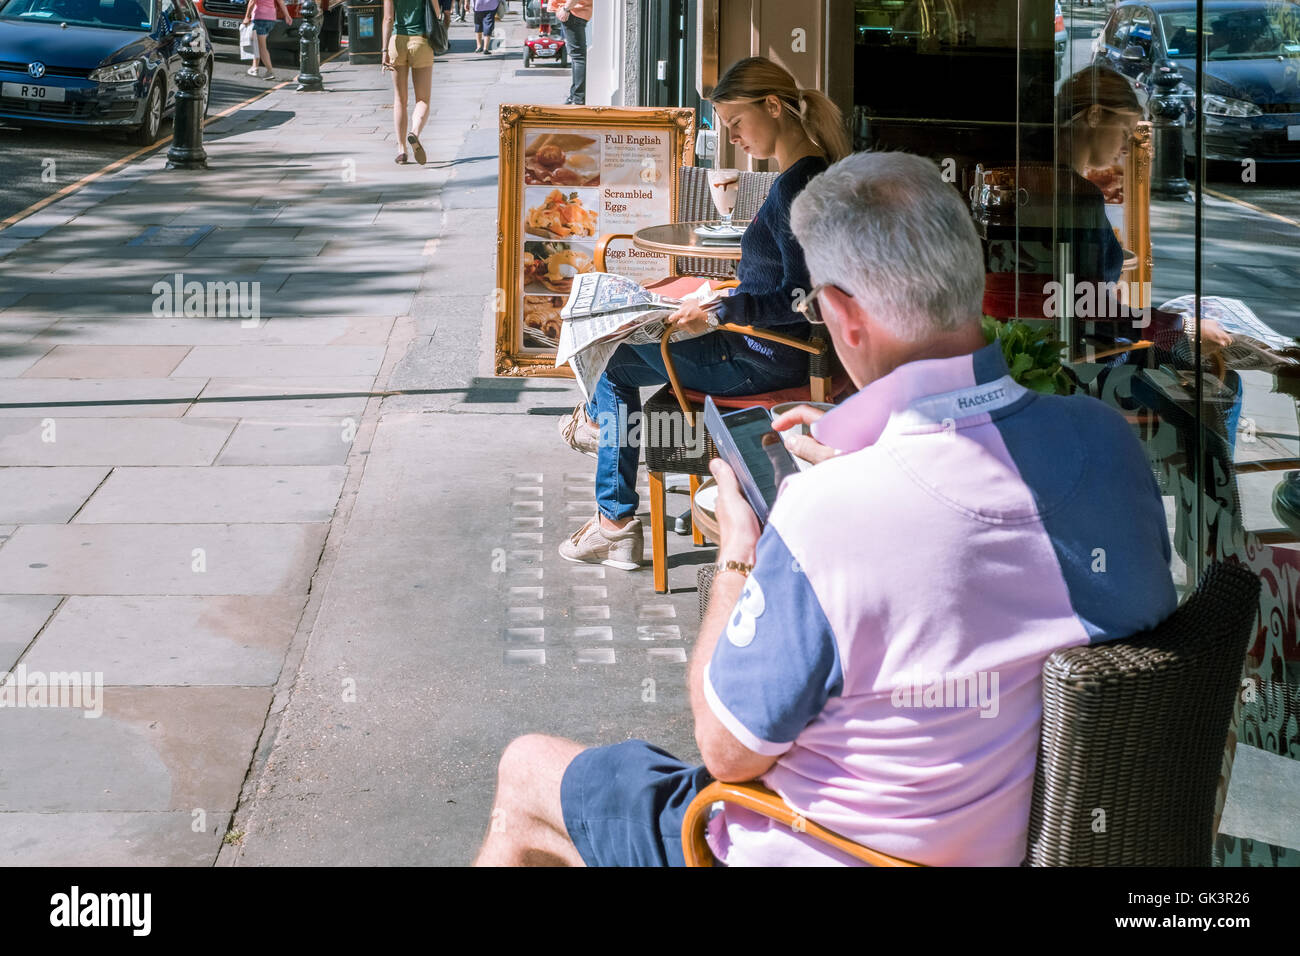 A young woman and an older man enjoying dining alfresco in London on a beautiful sunny day - 8th August 2016 - Stock Image